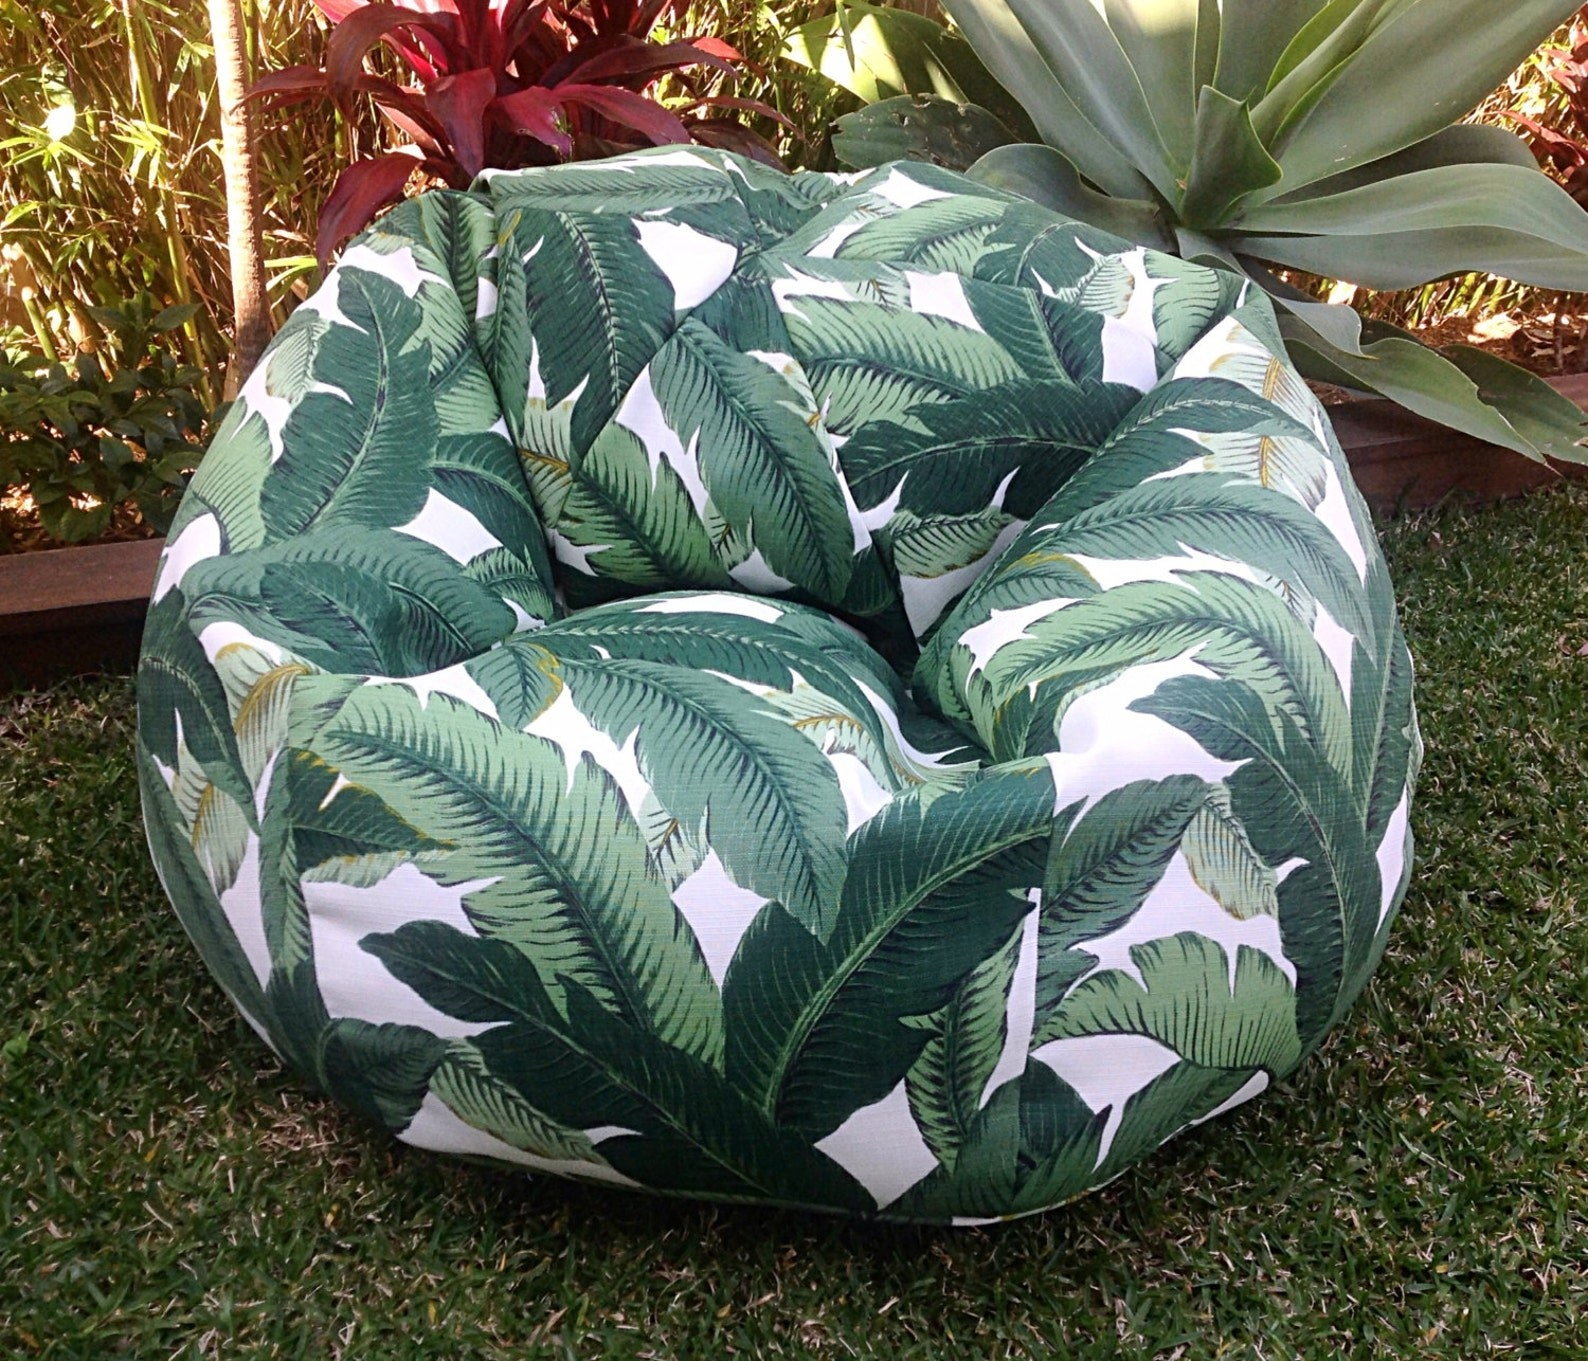 The green palm tree cover